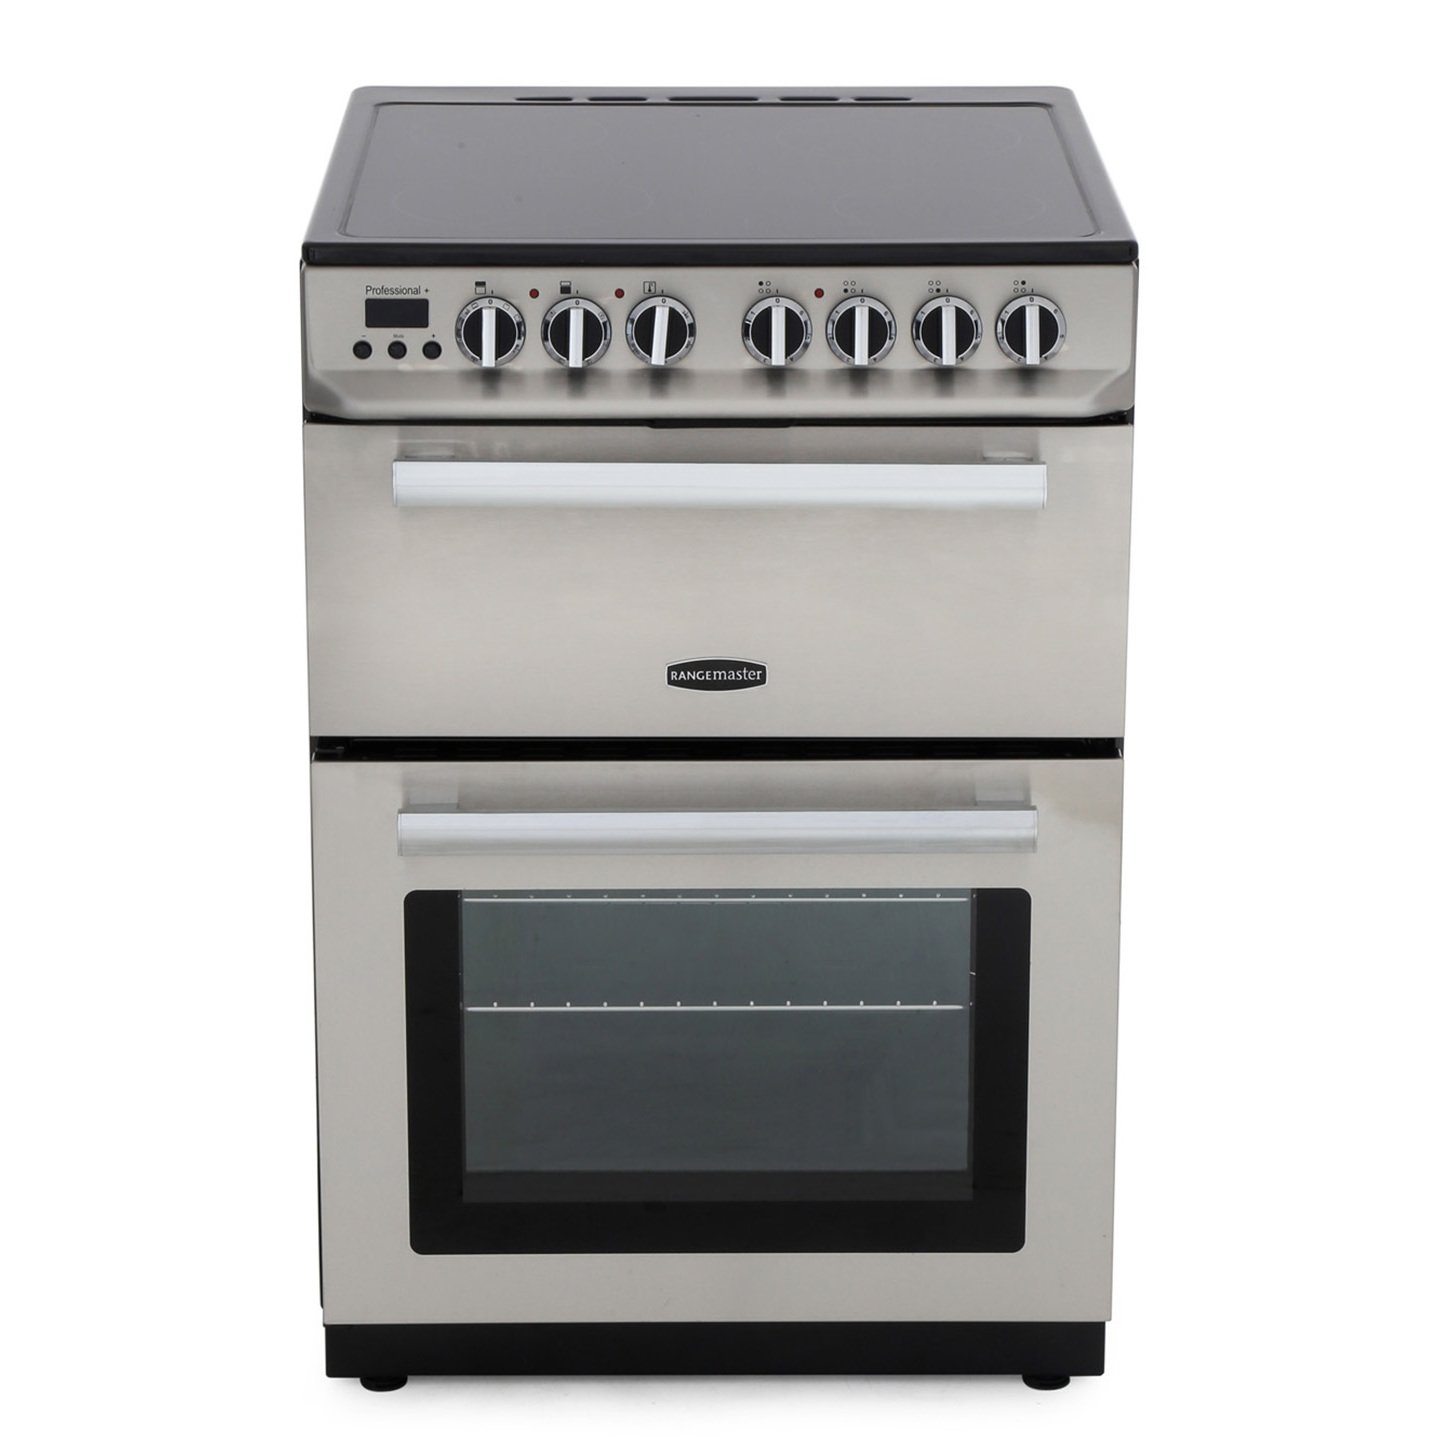 Rangemaster PROP60ECSS/C Professional Plus 60 Stainless Steel with Chrome Trim Electric Cooker with Double Oven